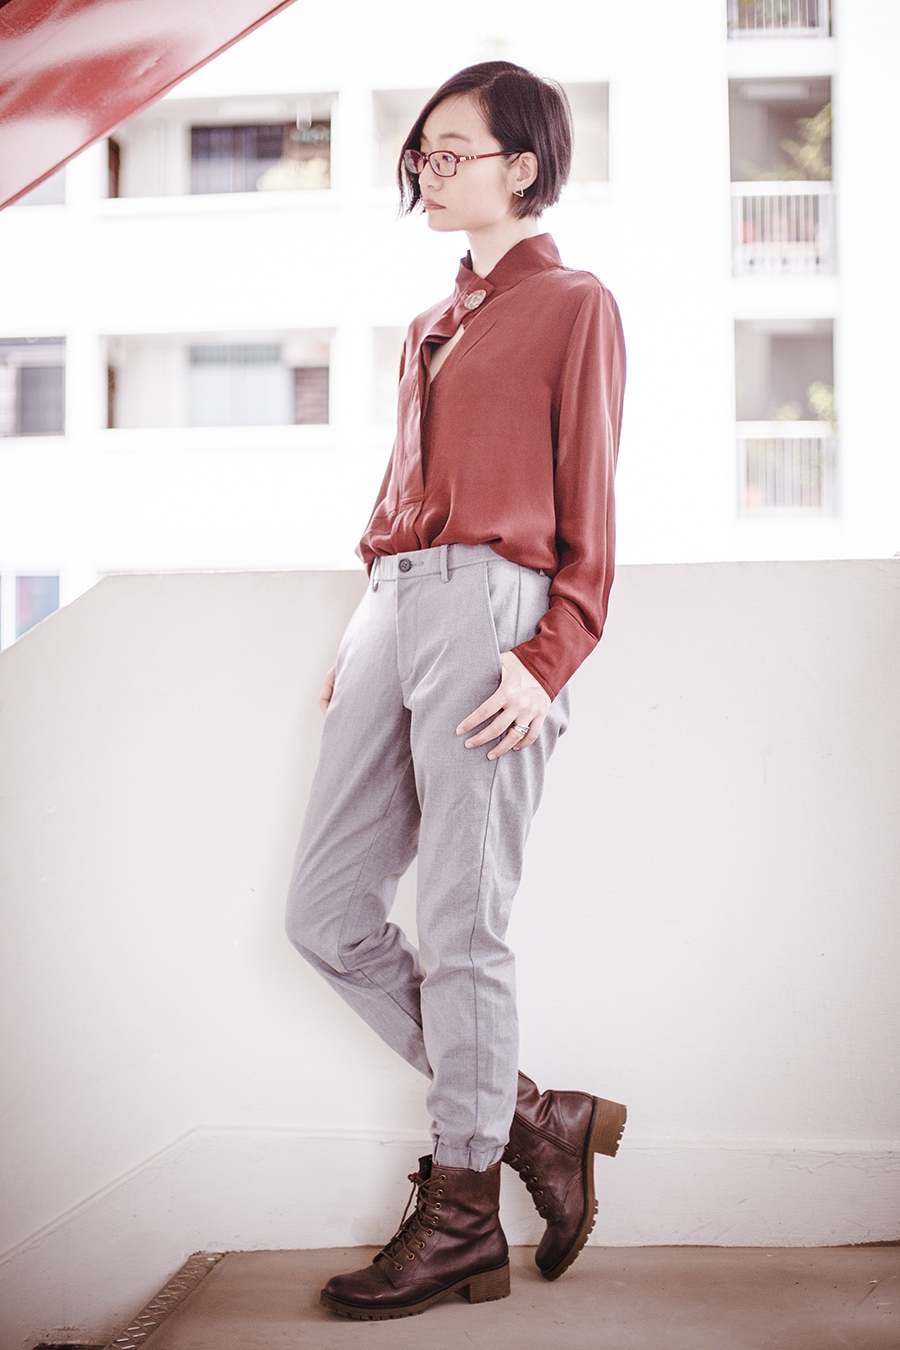 Smart casual ootd: Mango premium silk blouse in rust red, Uniqlo grey jogger pants, Steve Madden brown lace boots, Firmoo red frame glasses, Osewaya triangle ear stud.